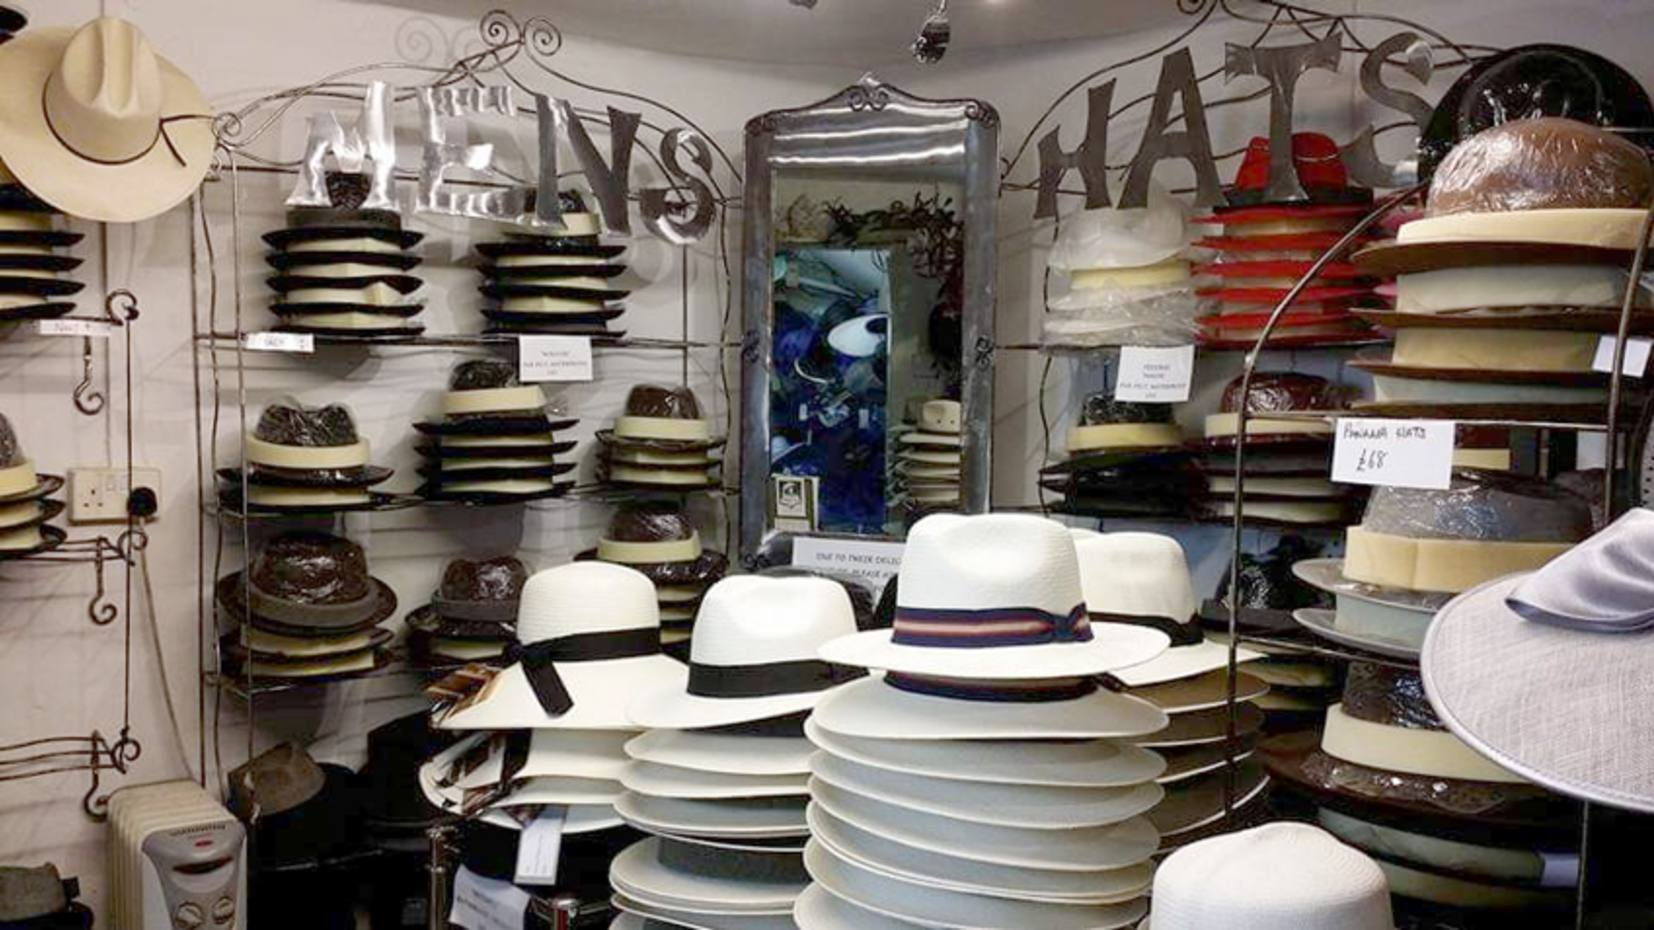 The Bath Hat Company stocks a wide range of stylish men's and women's hats